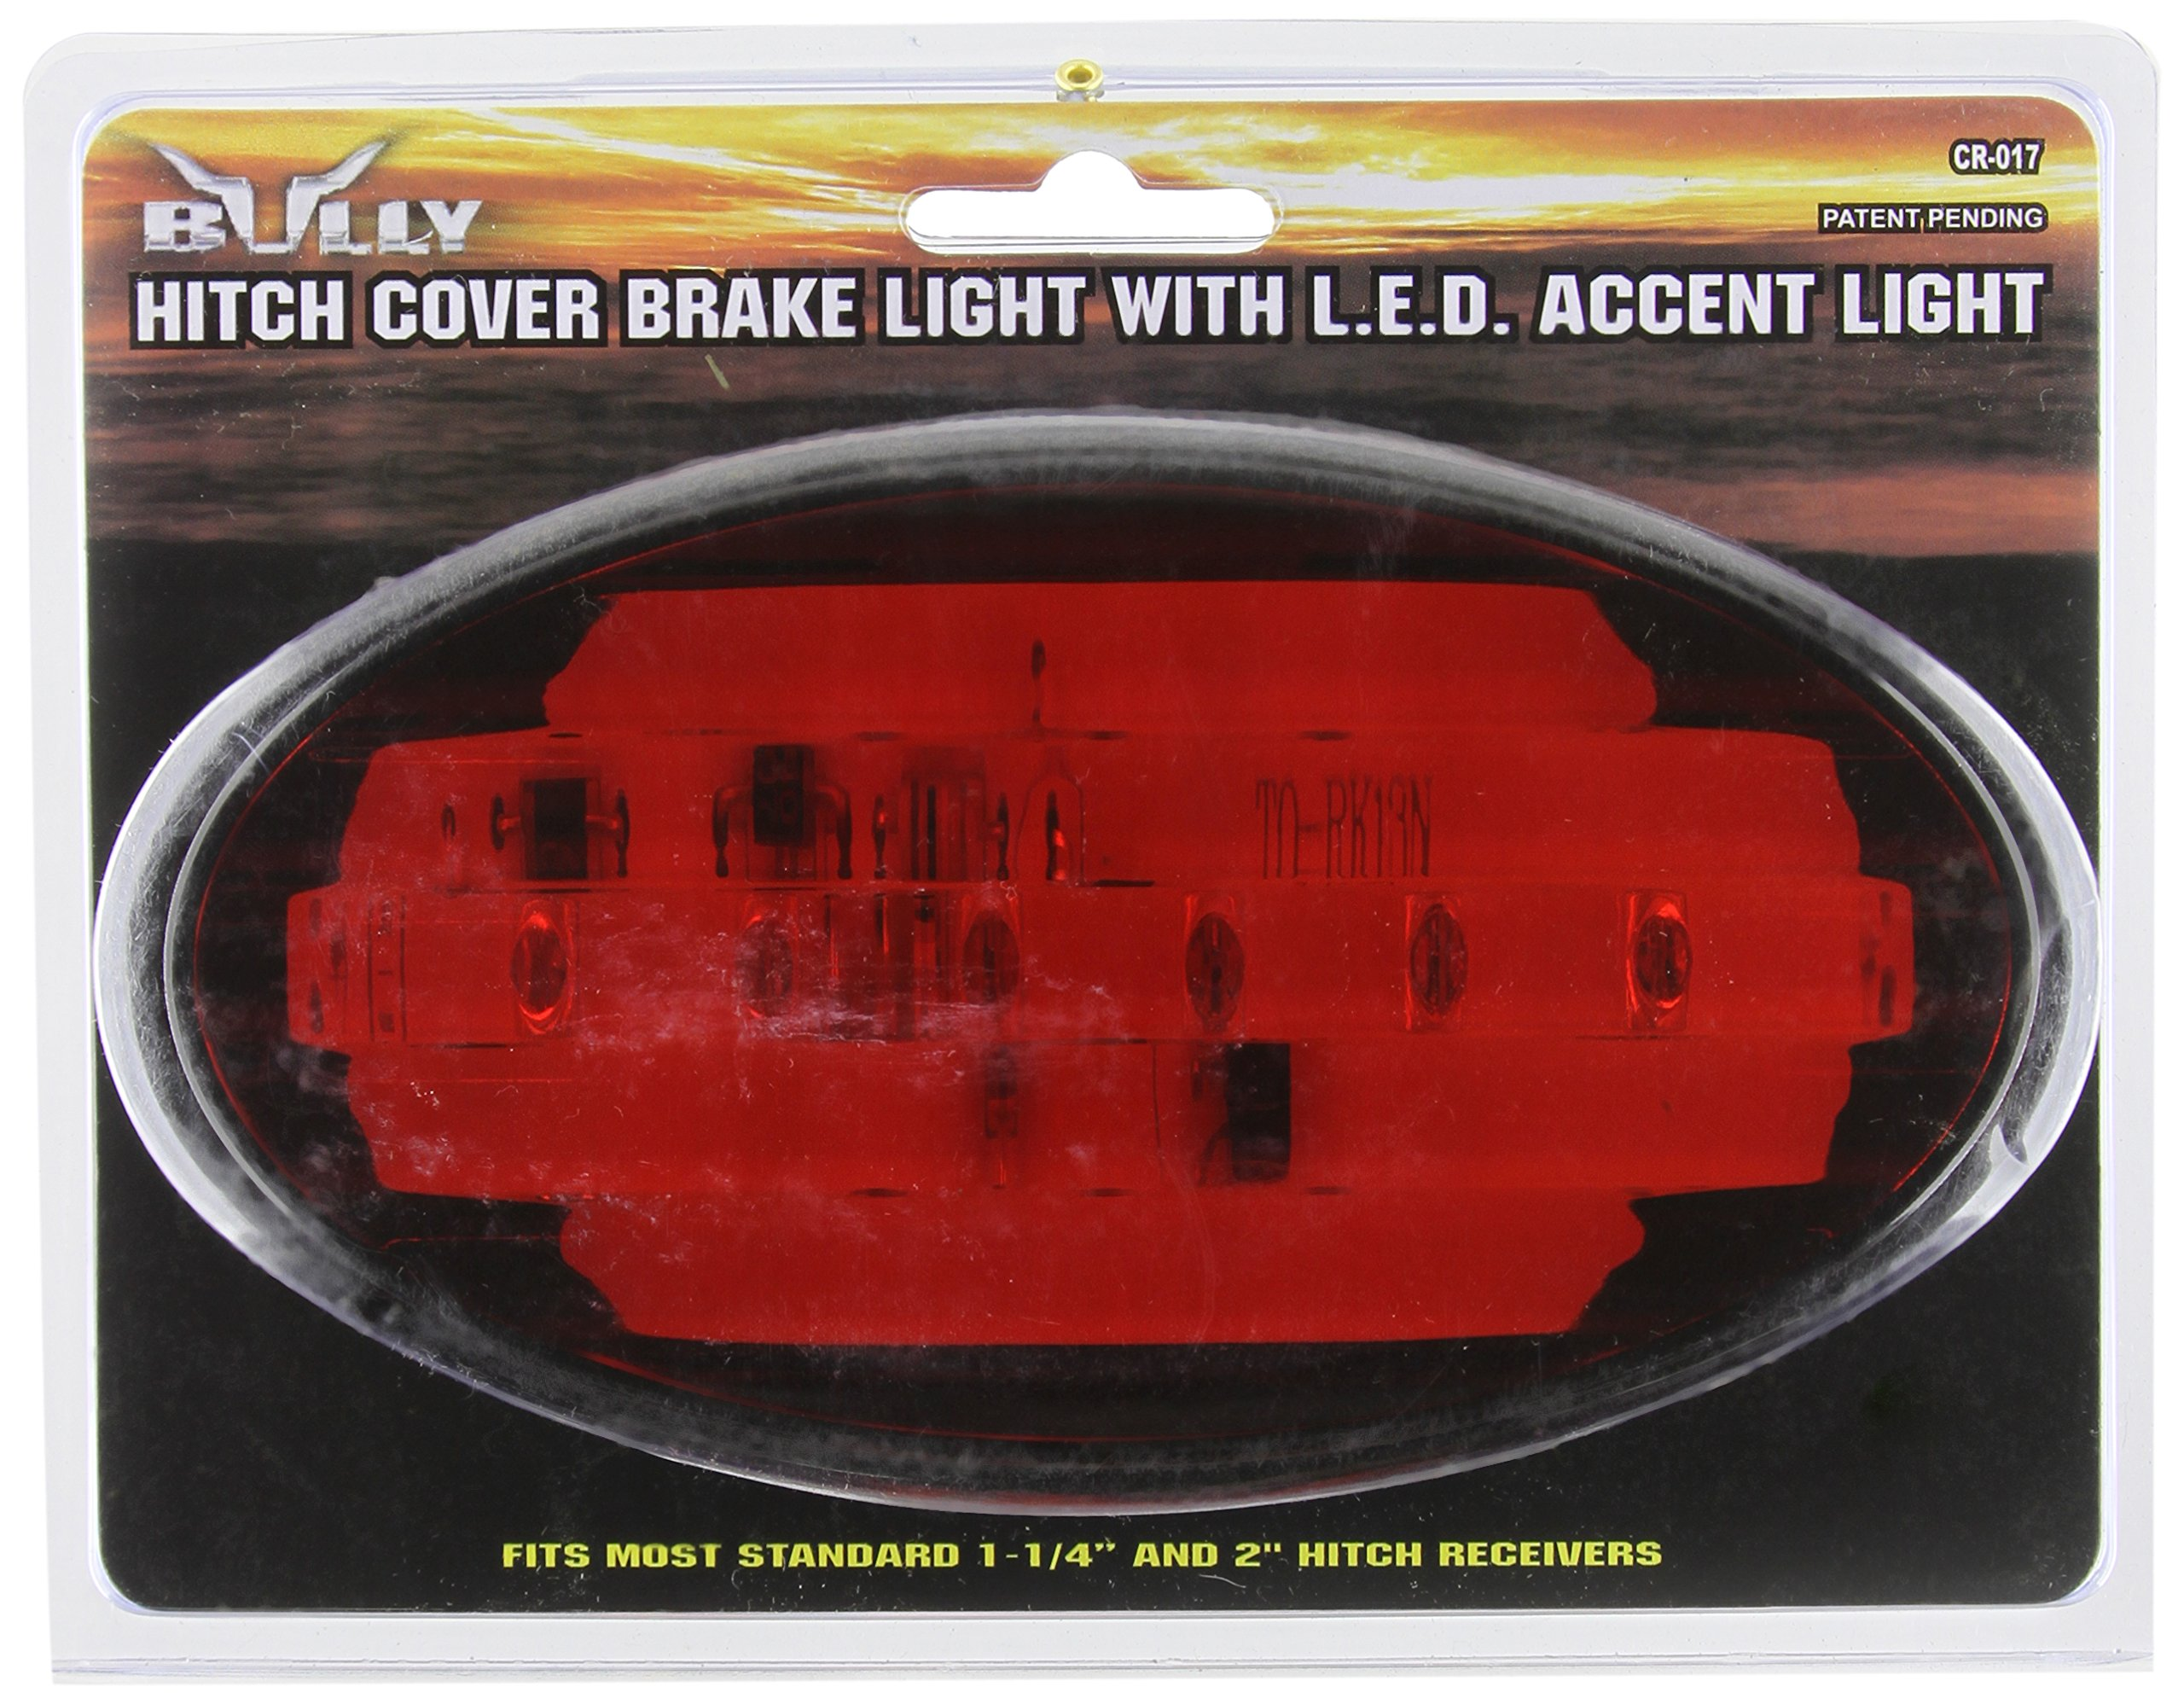 Pilot Automotive Bully CR-017 LED Hitch Brake Light by Pilot Automotive